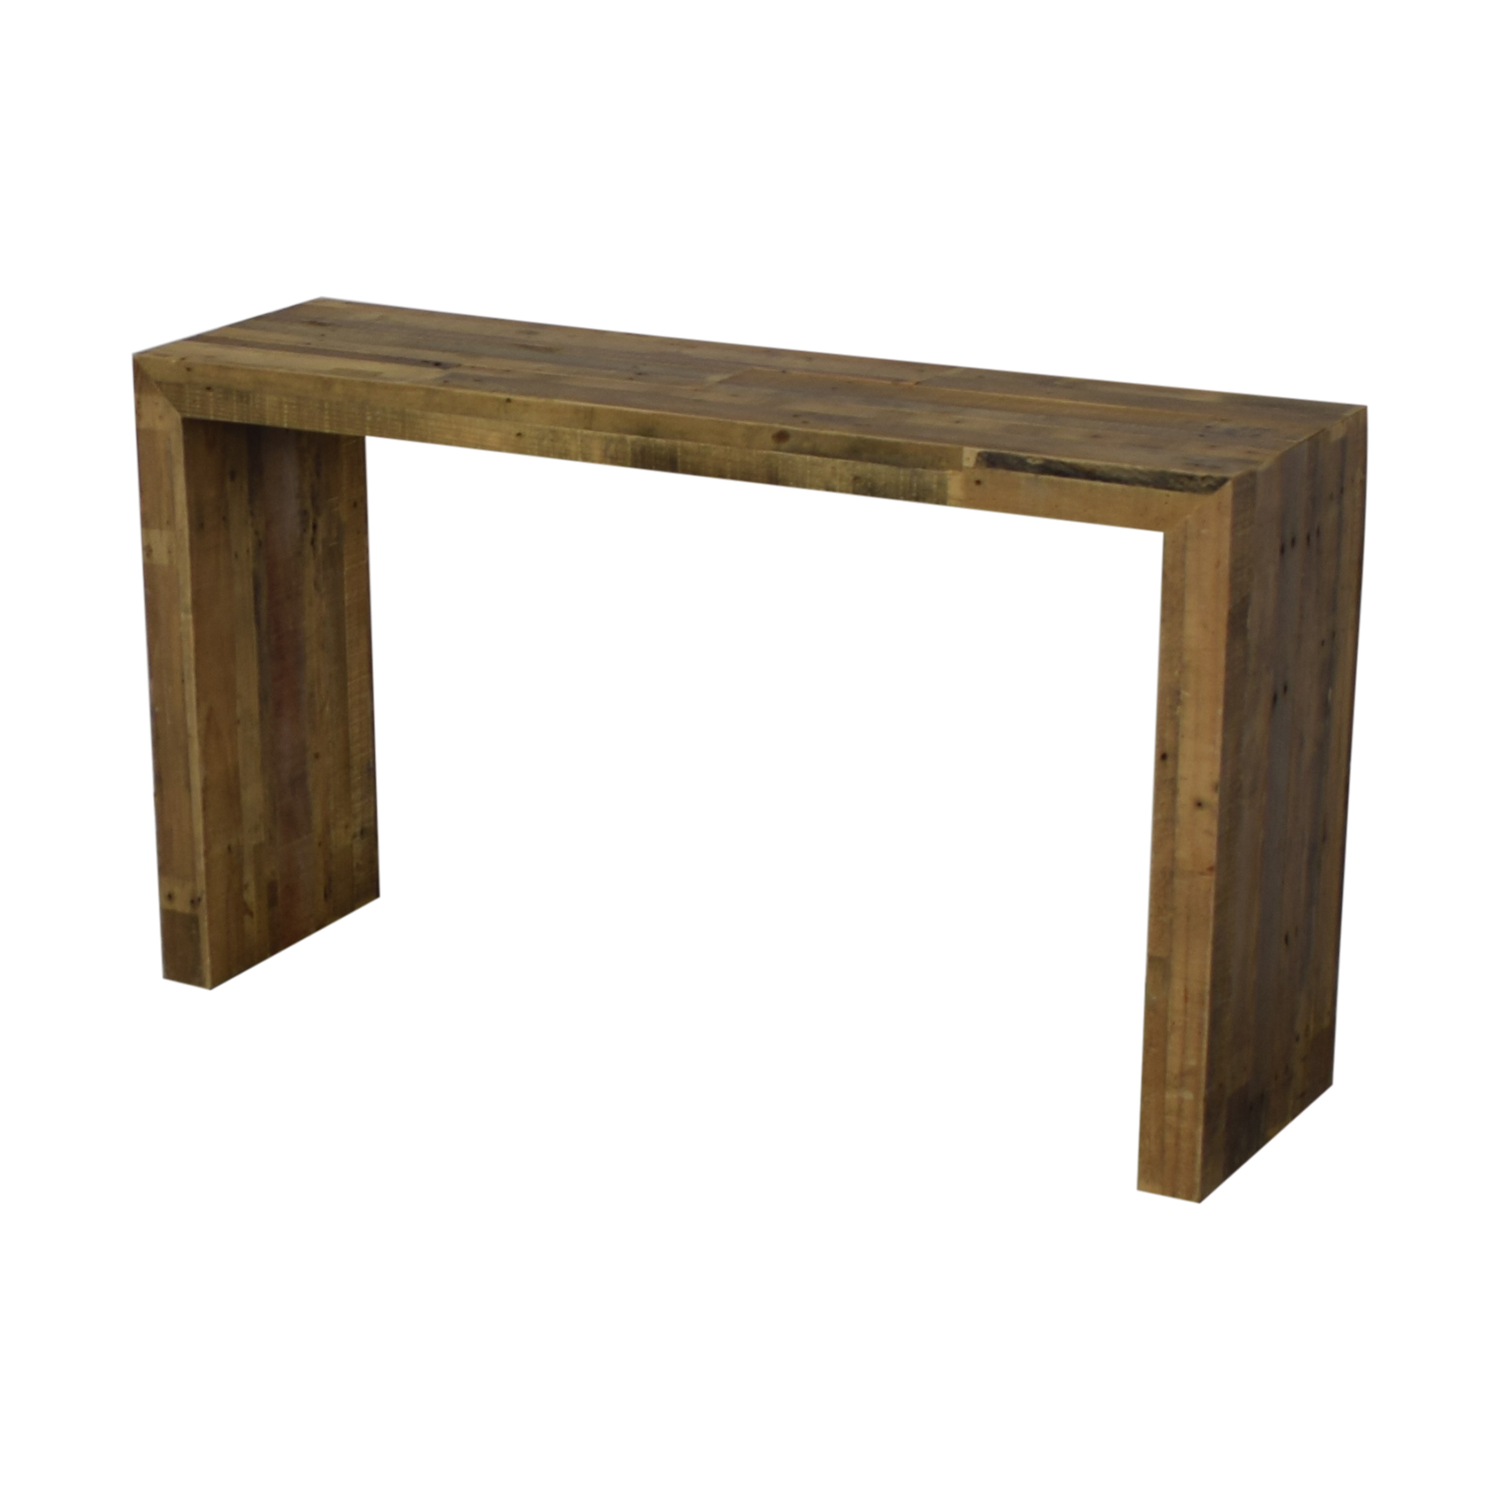 West Elm Emmerson Reclaimed Wood Console / Accent Tables